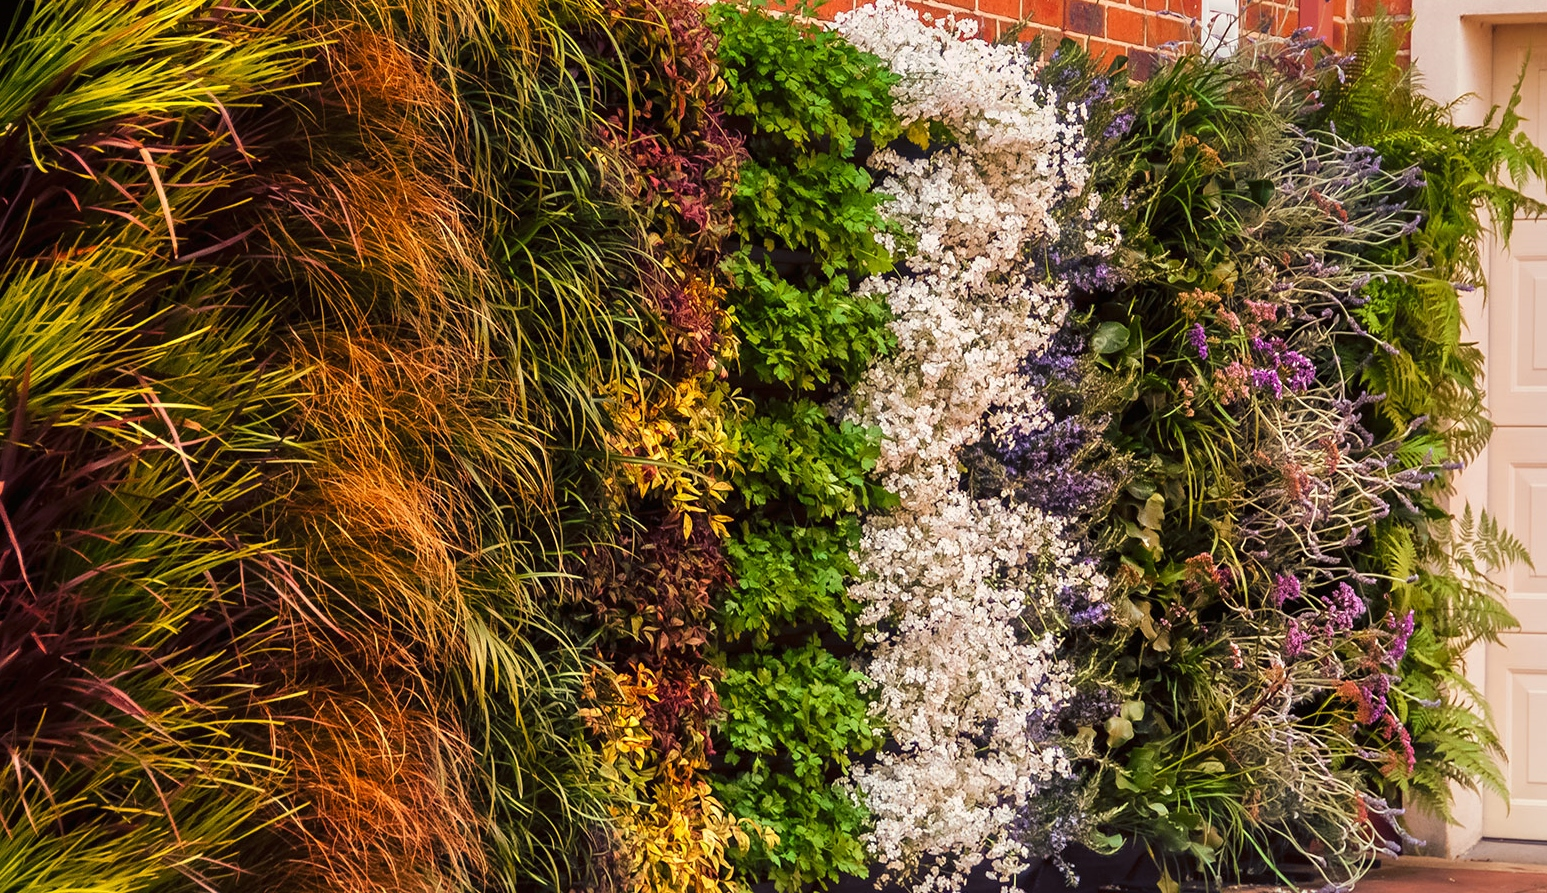 How to build a vertical garden living wall green wall